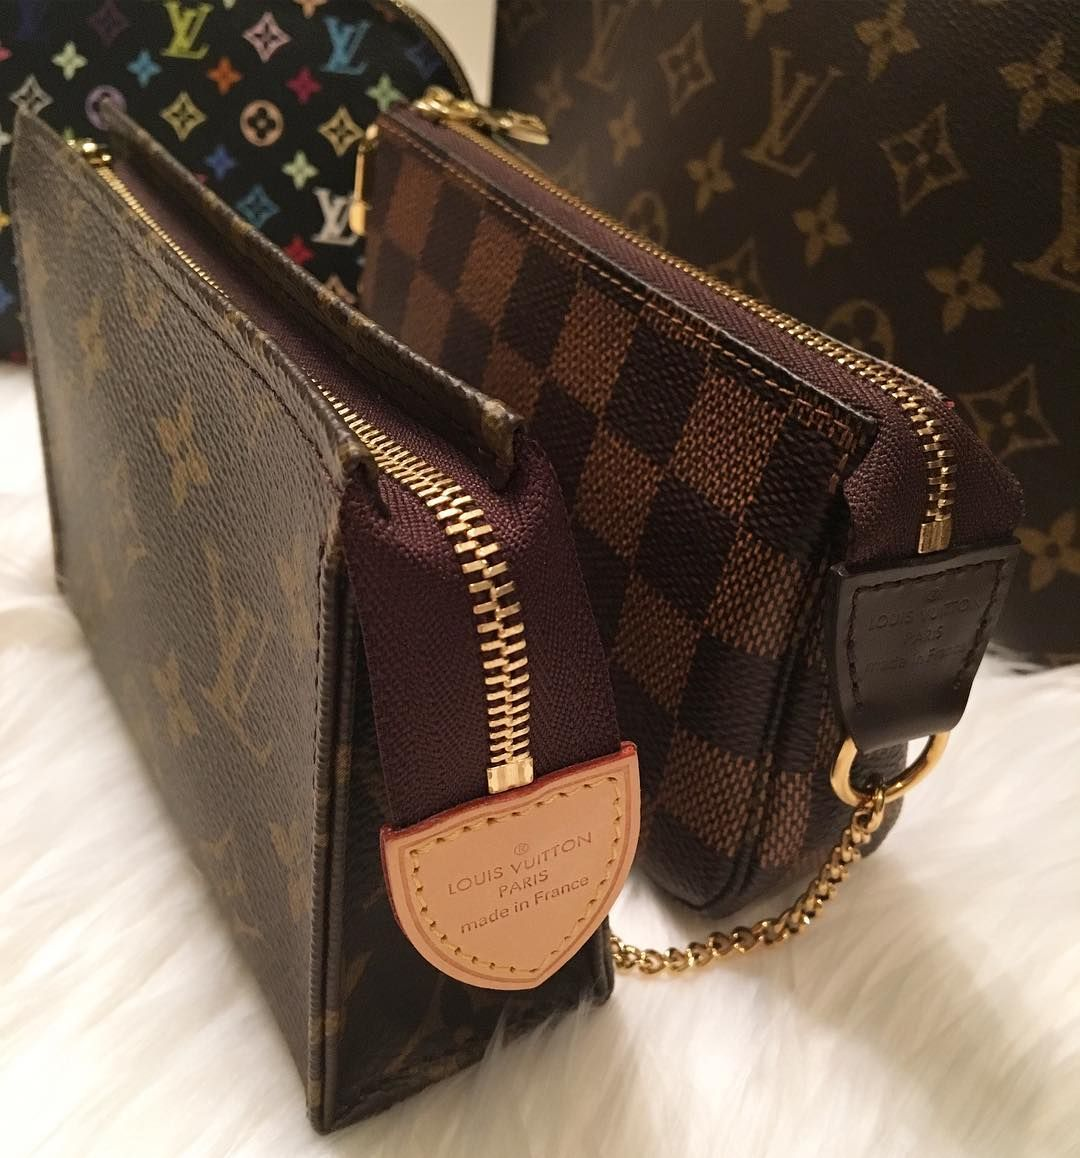 Betere Louis Vuitton Pouch For Make-up. A Handbag for Women To Carry UK-38